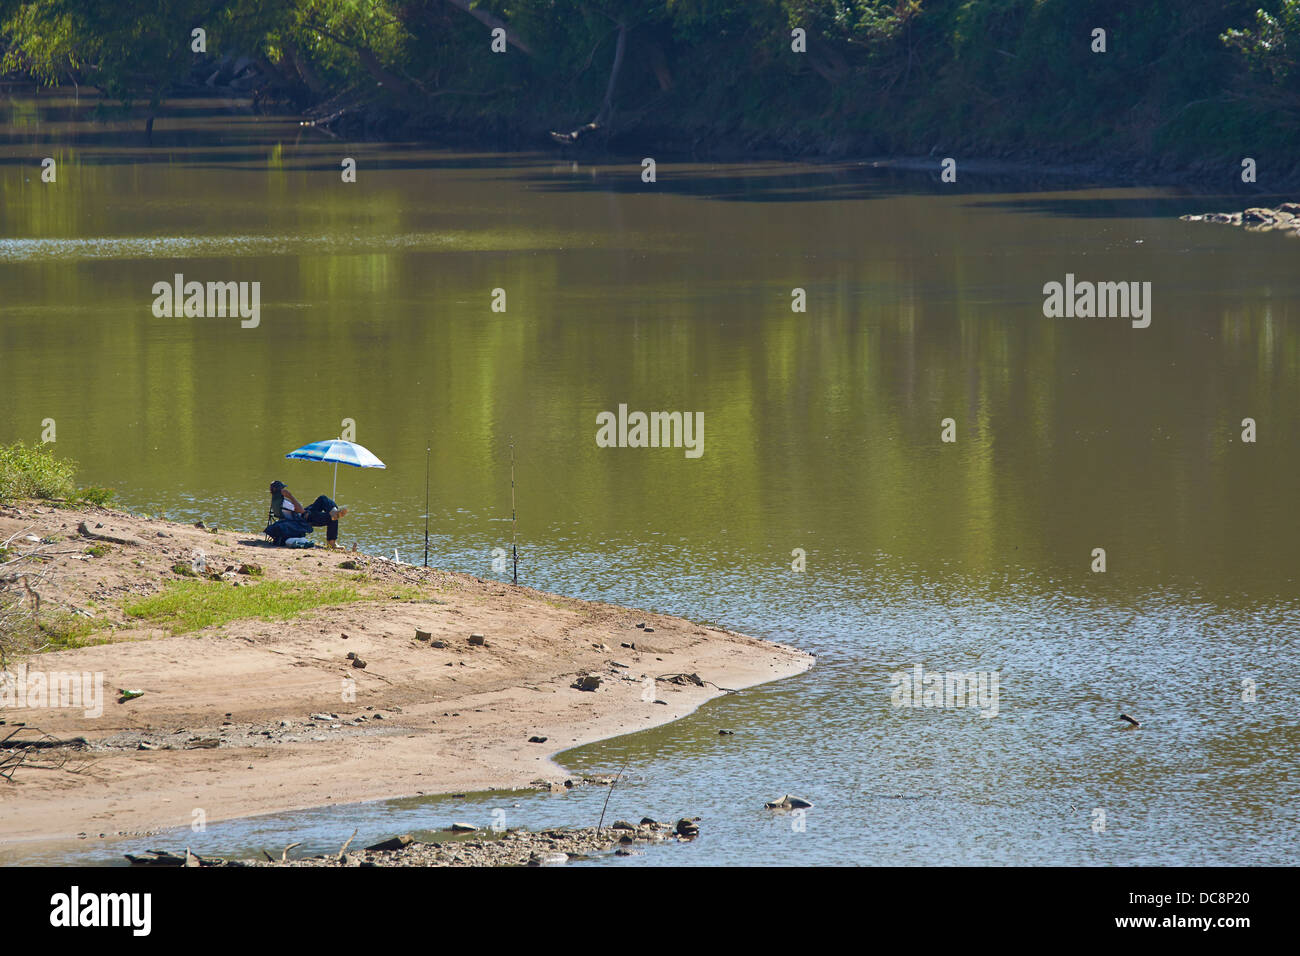 Relaxed fishing - Stock Image